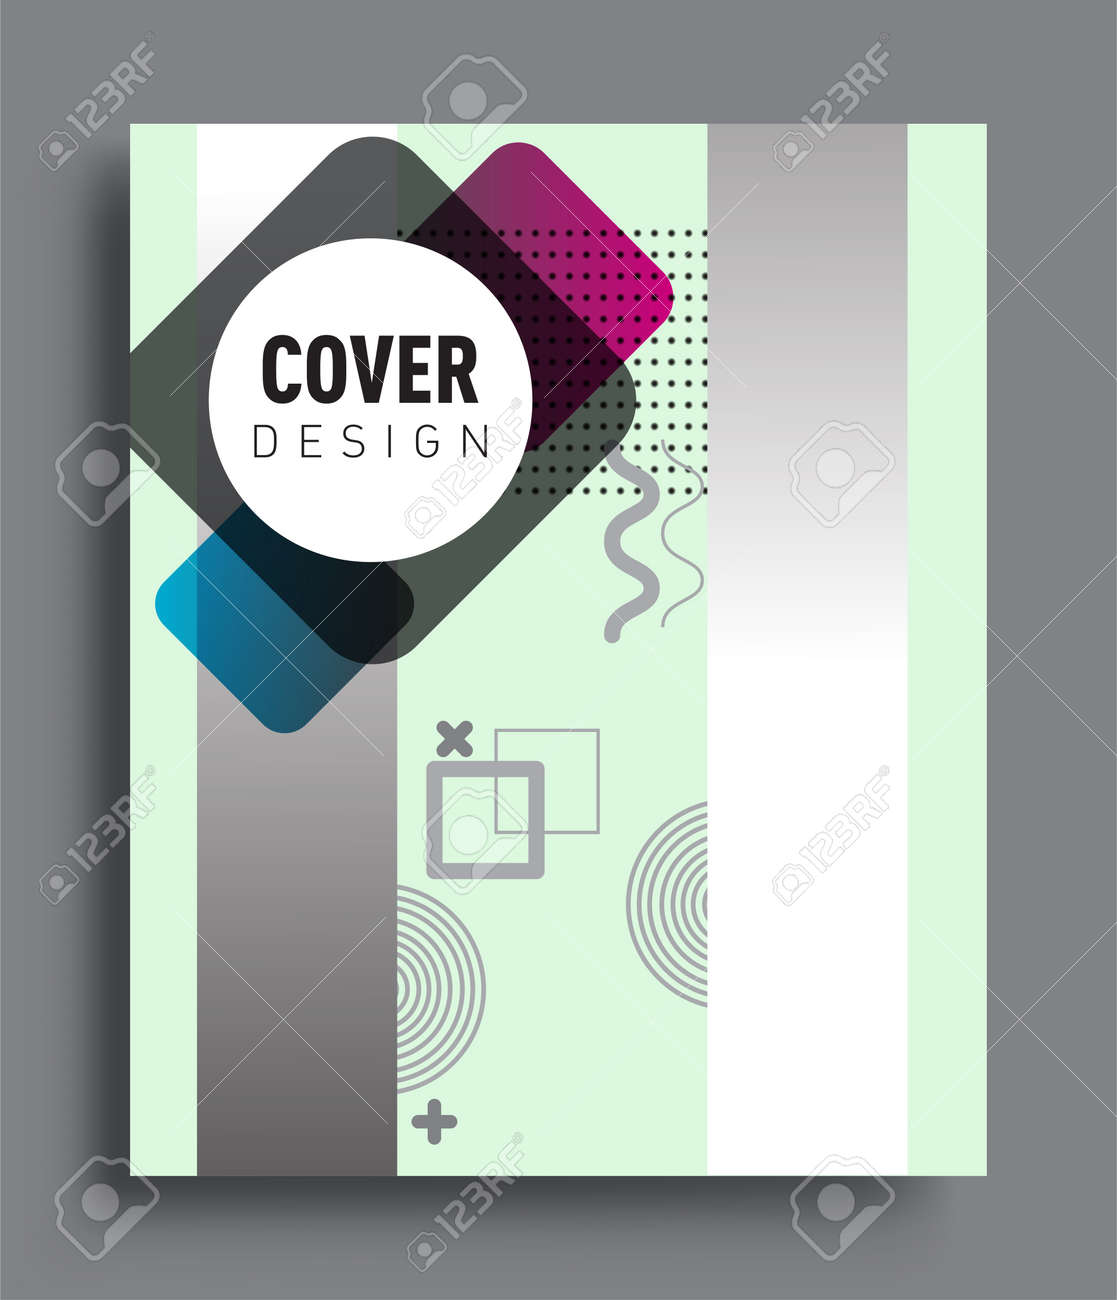 Minimalistic design, creative concept Abstract geometric pattern design and colorful background. Applicable for placards, brochures, posters, covers and banners. - 156806203